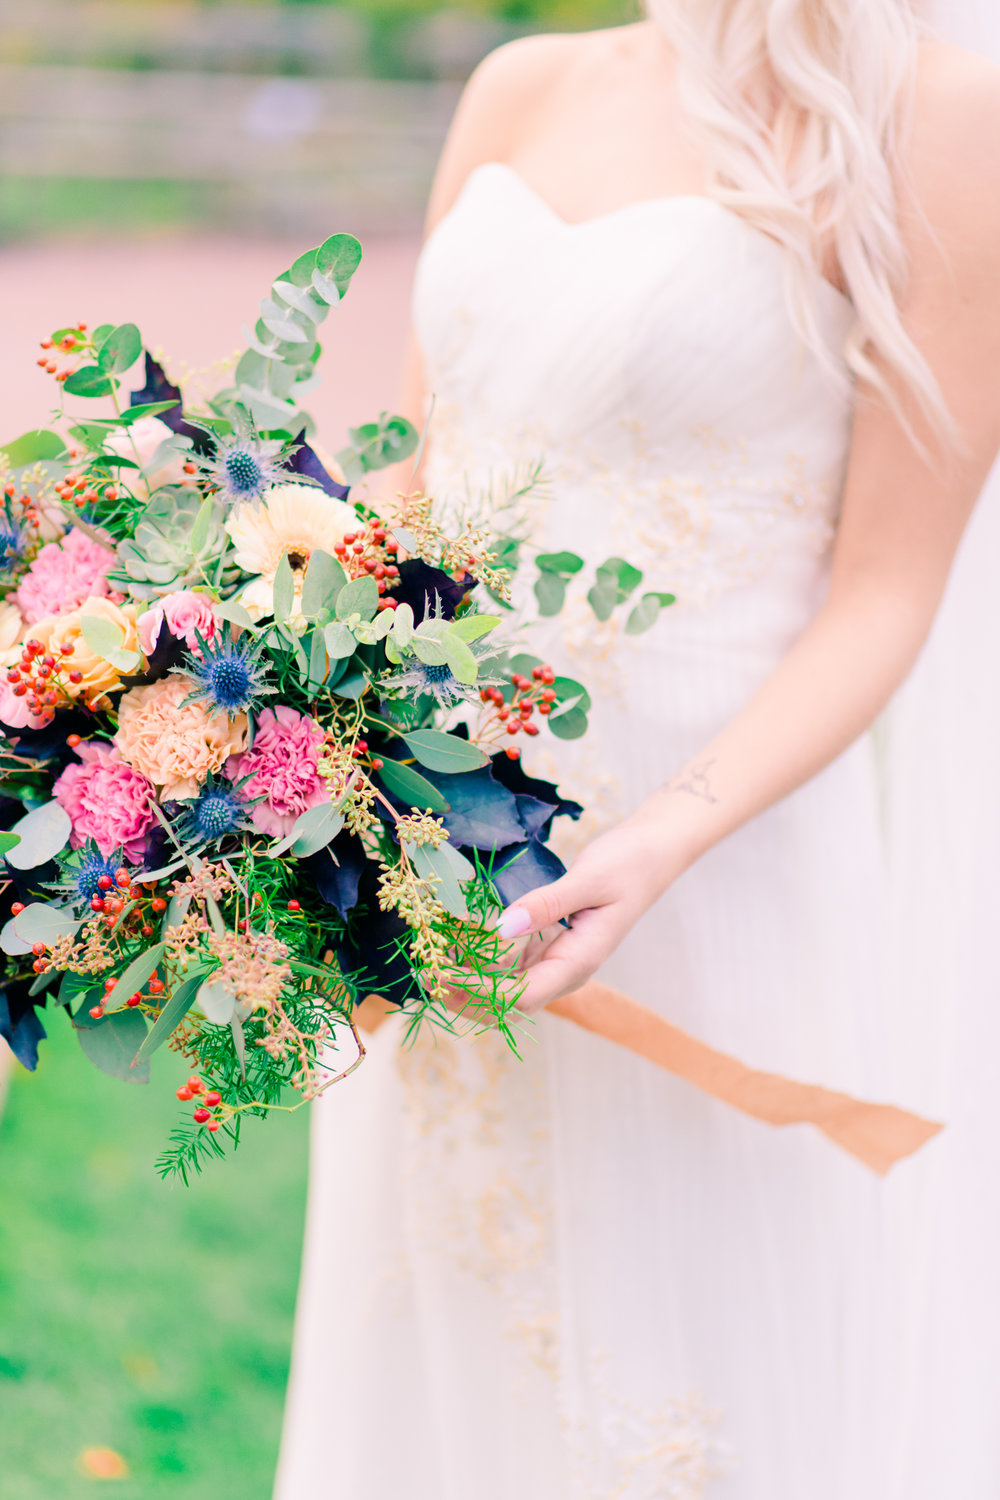 Elegant Organic Fall Swedish Bridal Wedding Styled Shoot - Erika Alvarenga Photography-44.jpg